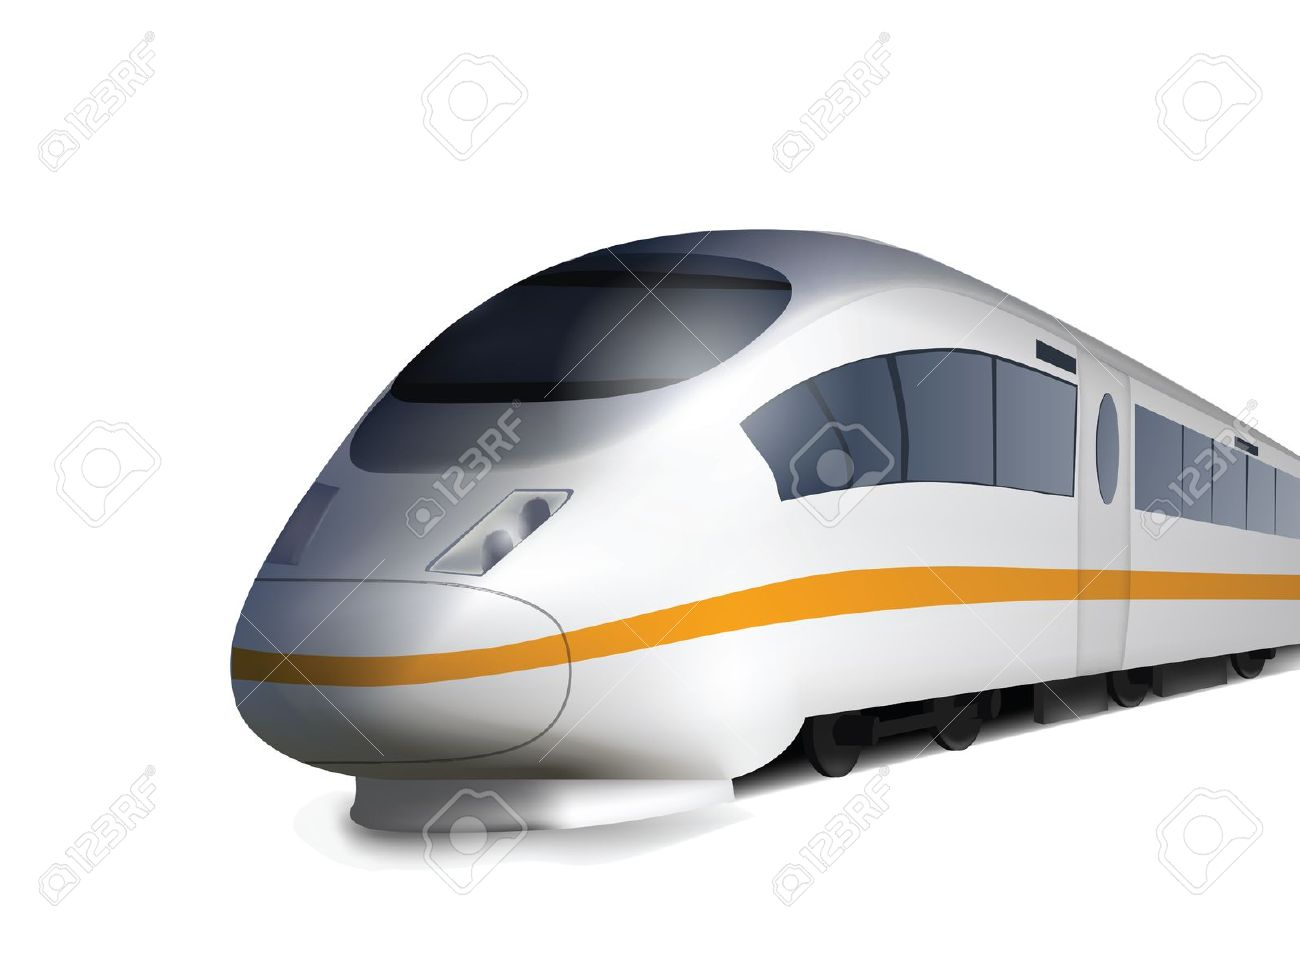 High Speed Train Isolated On White Royalty Free Cliparts, Vectors.